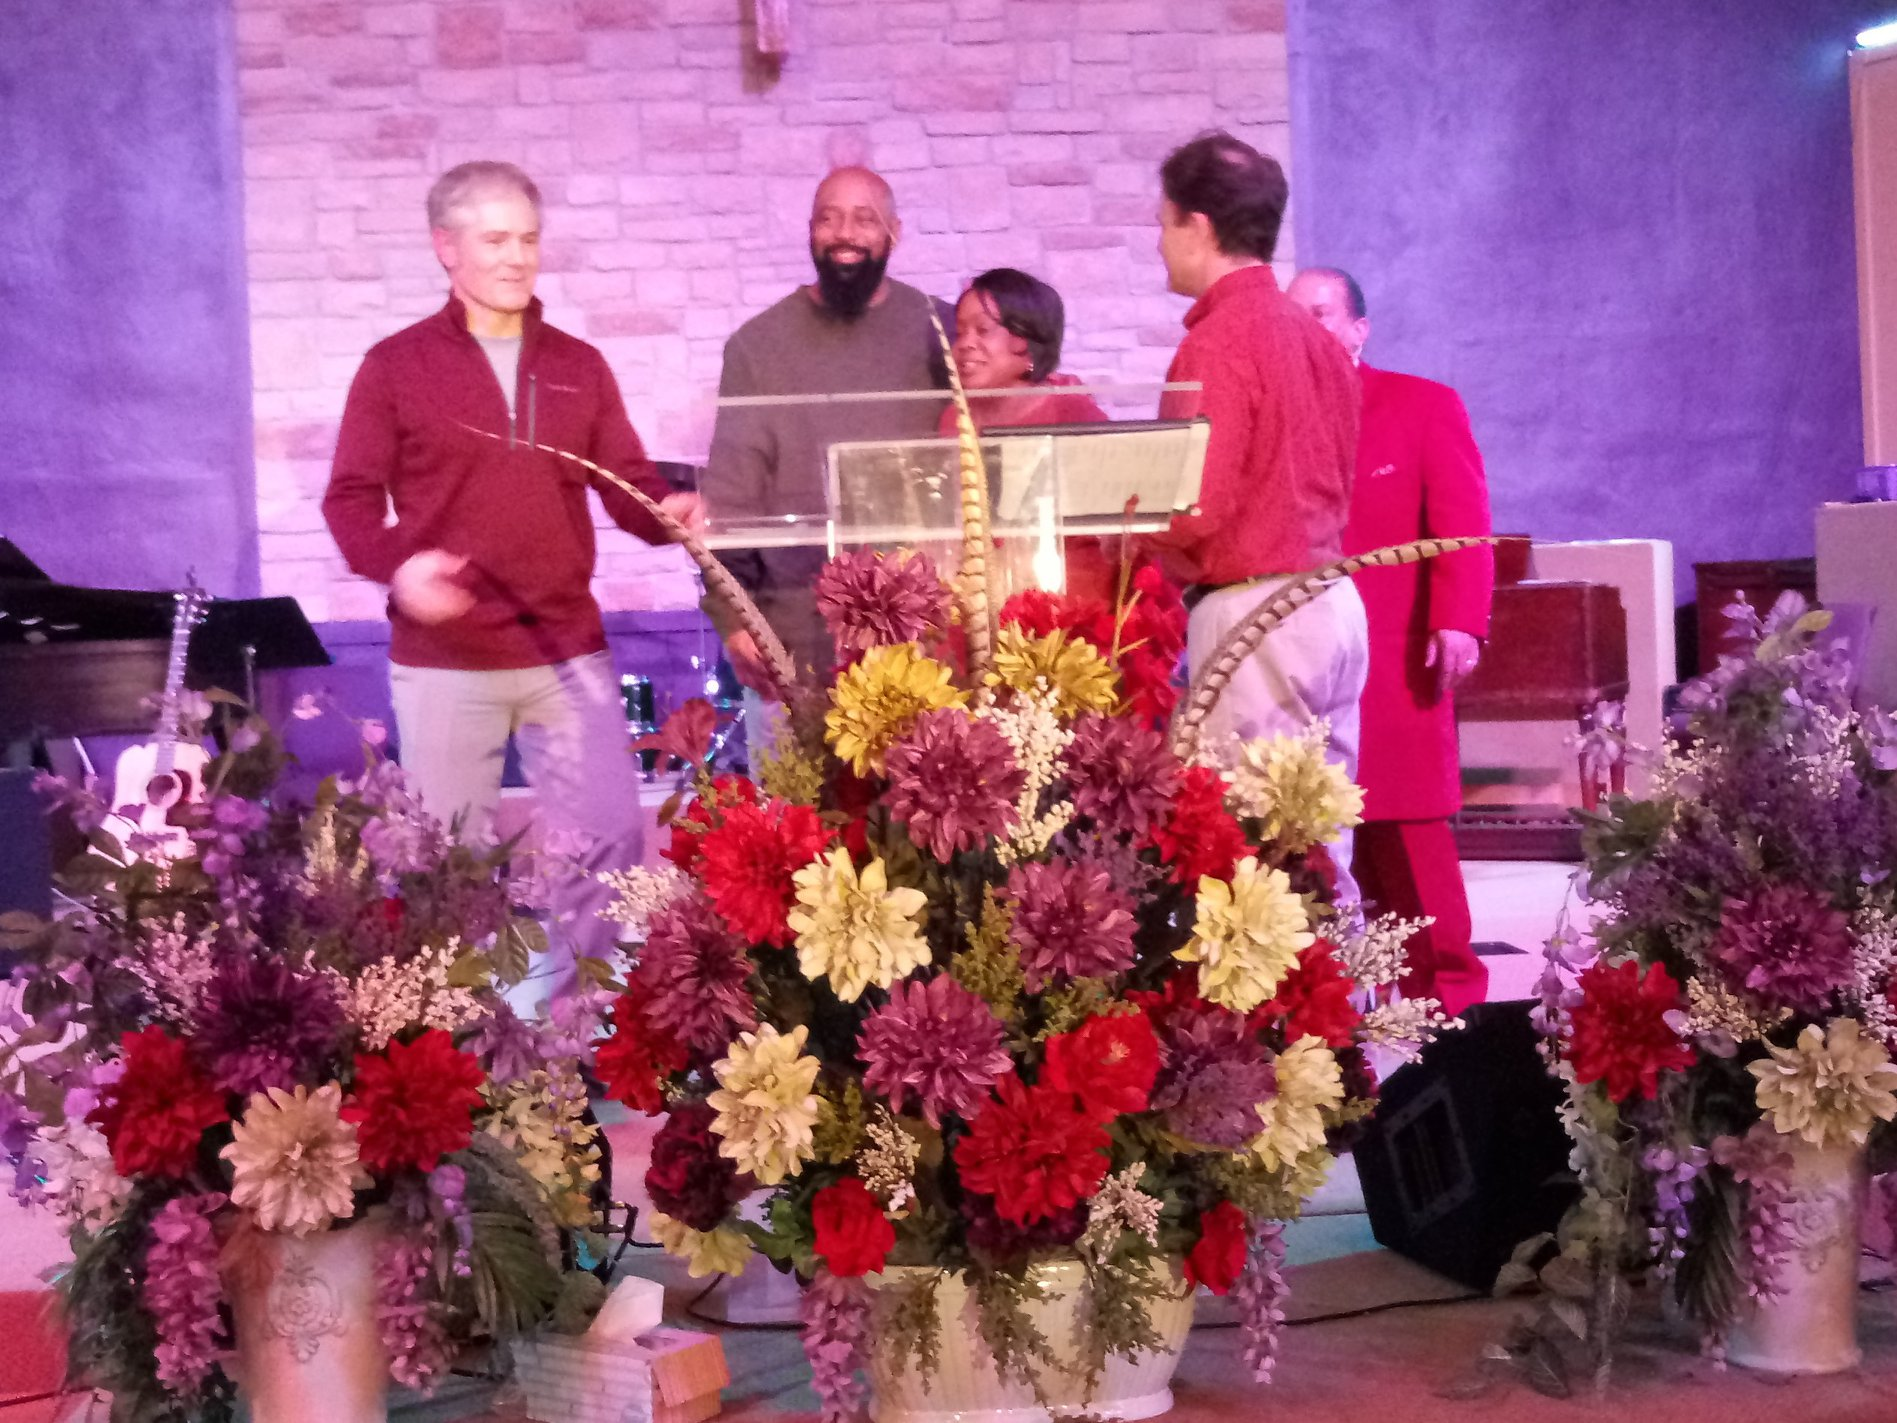 Christ Community College Hill  Director Ralph William's and Wife Lisa receive C.H. Ministerium Award for Service